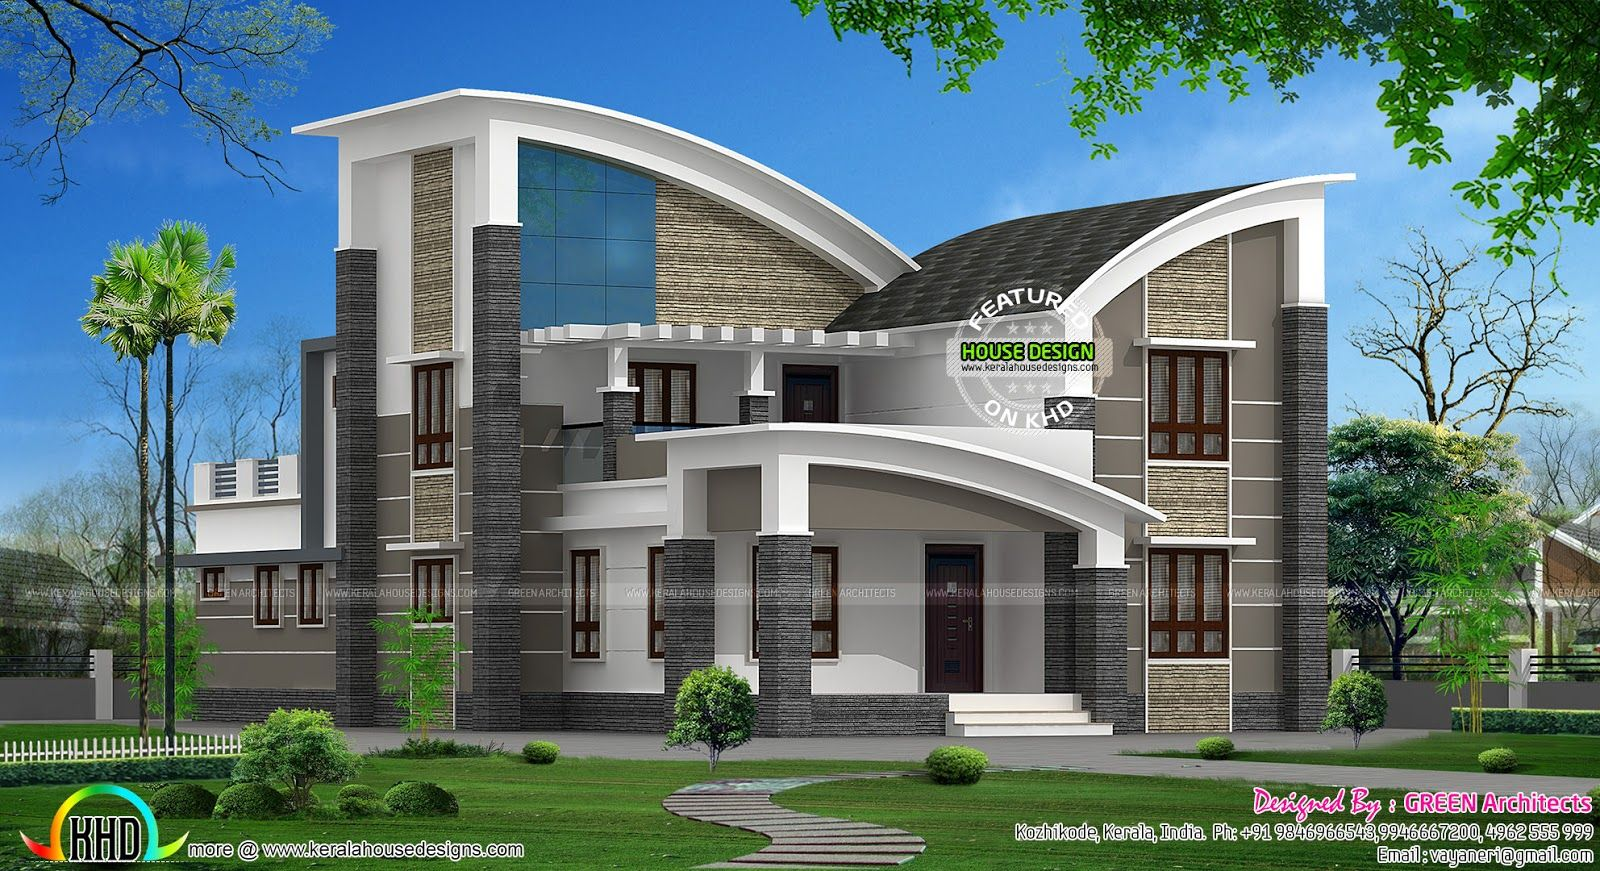 Modern style curved roof villa home inspiration for Modern house designs images